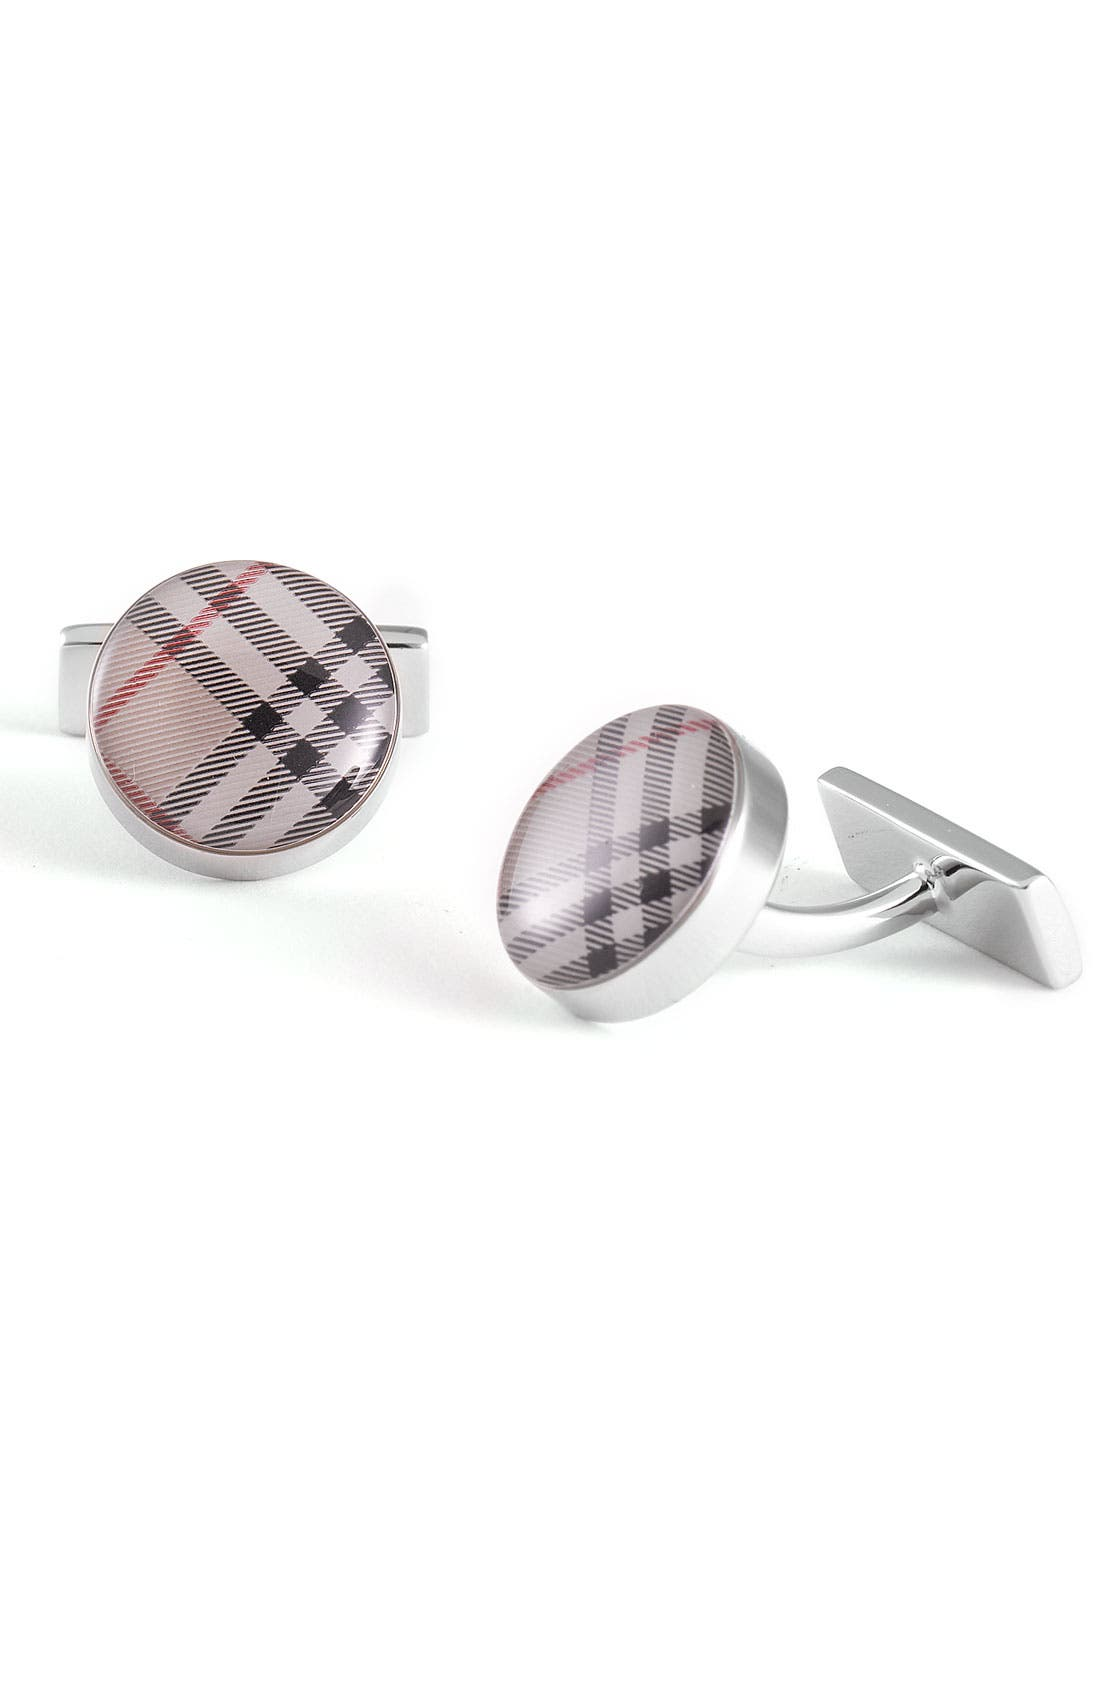 Alternate Image 1 Selected - Burberry Check Enamel Cuff Links